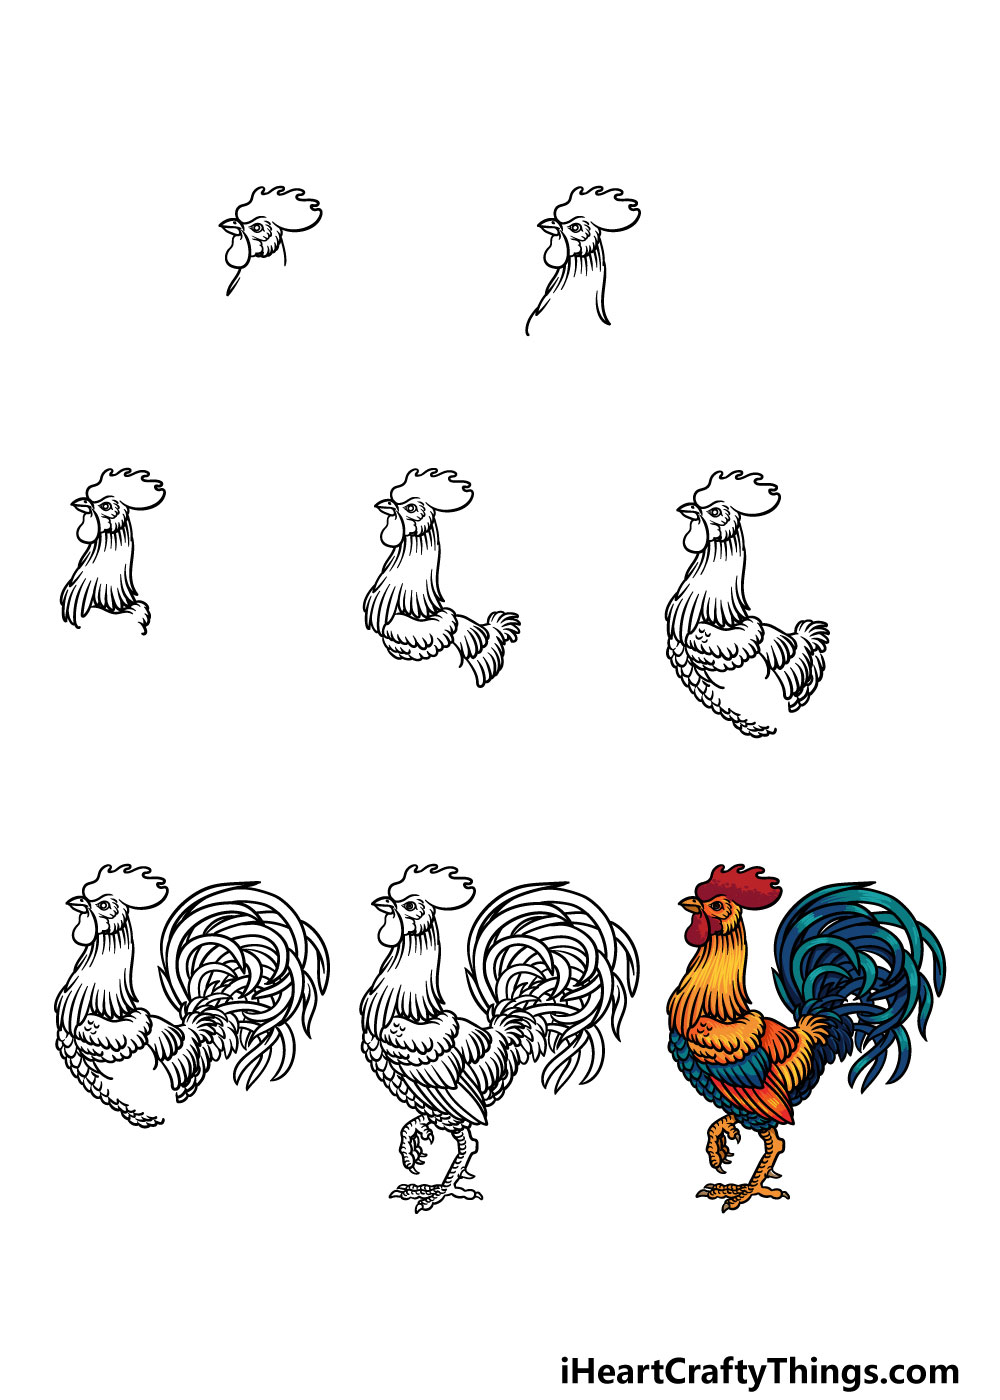 how to draw a rooster in 8 steps